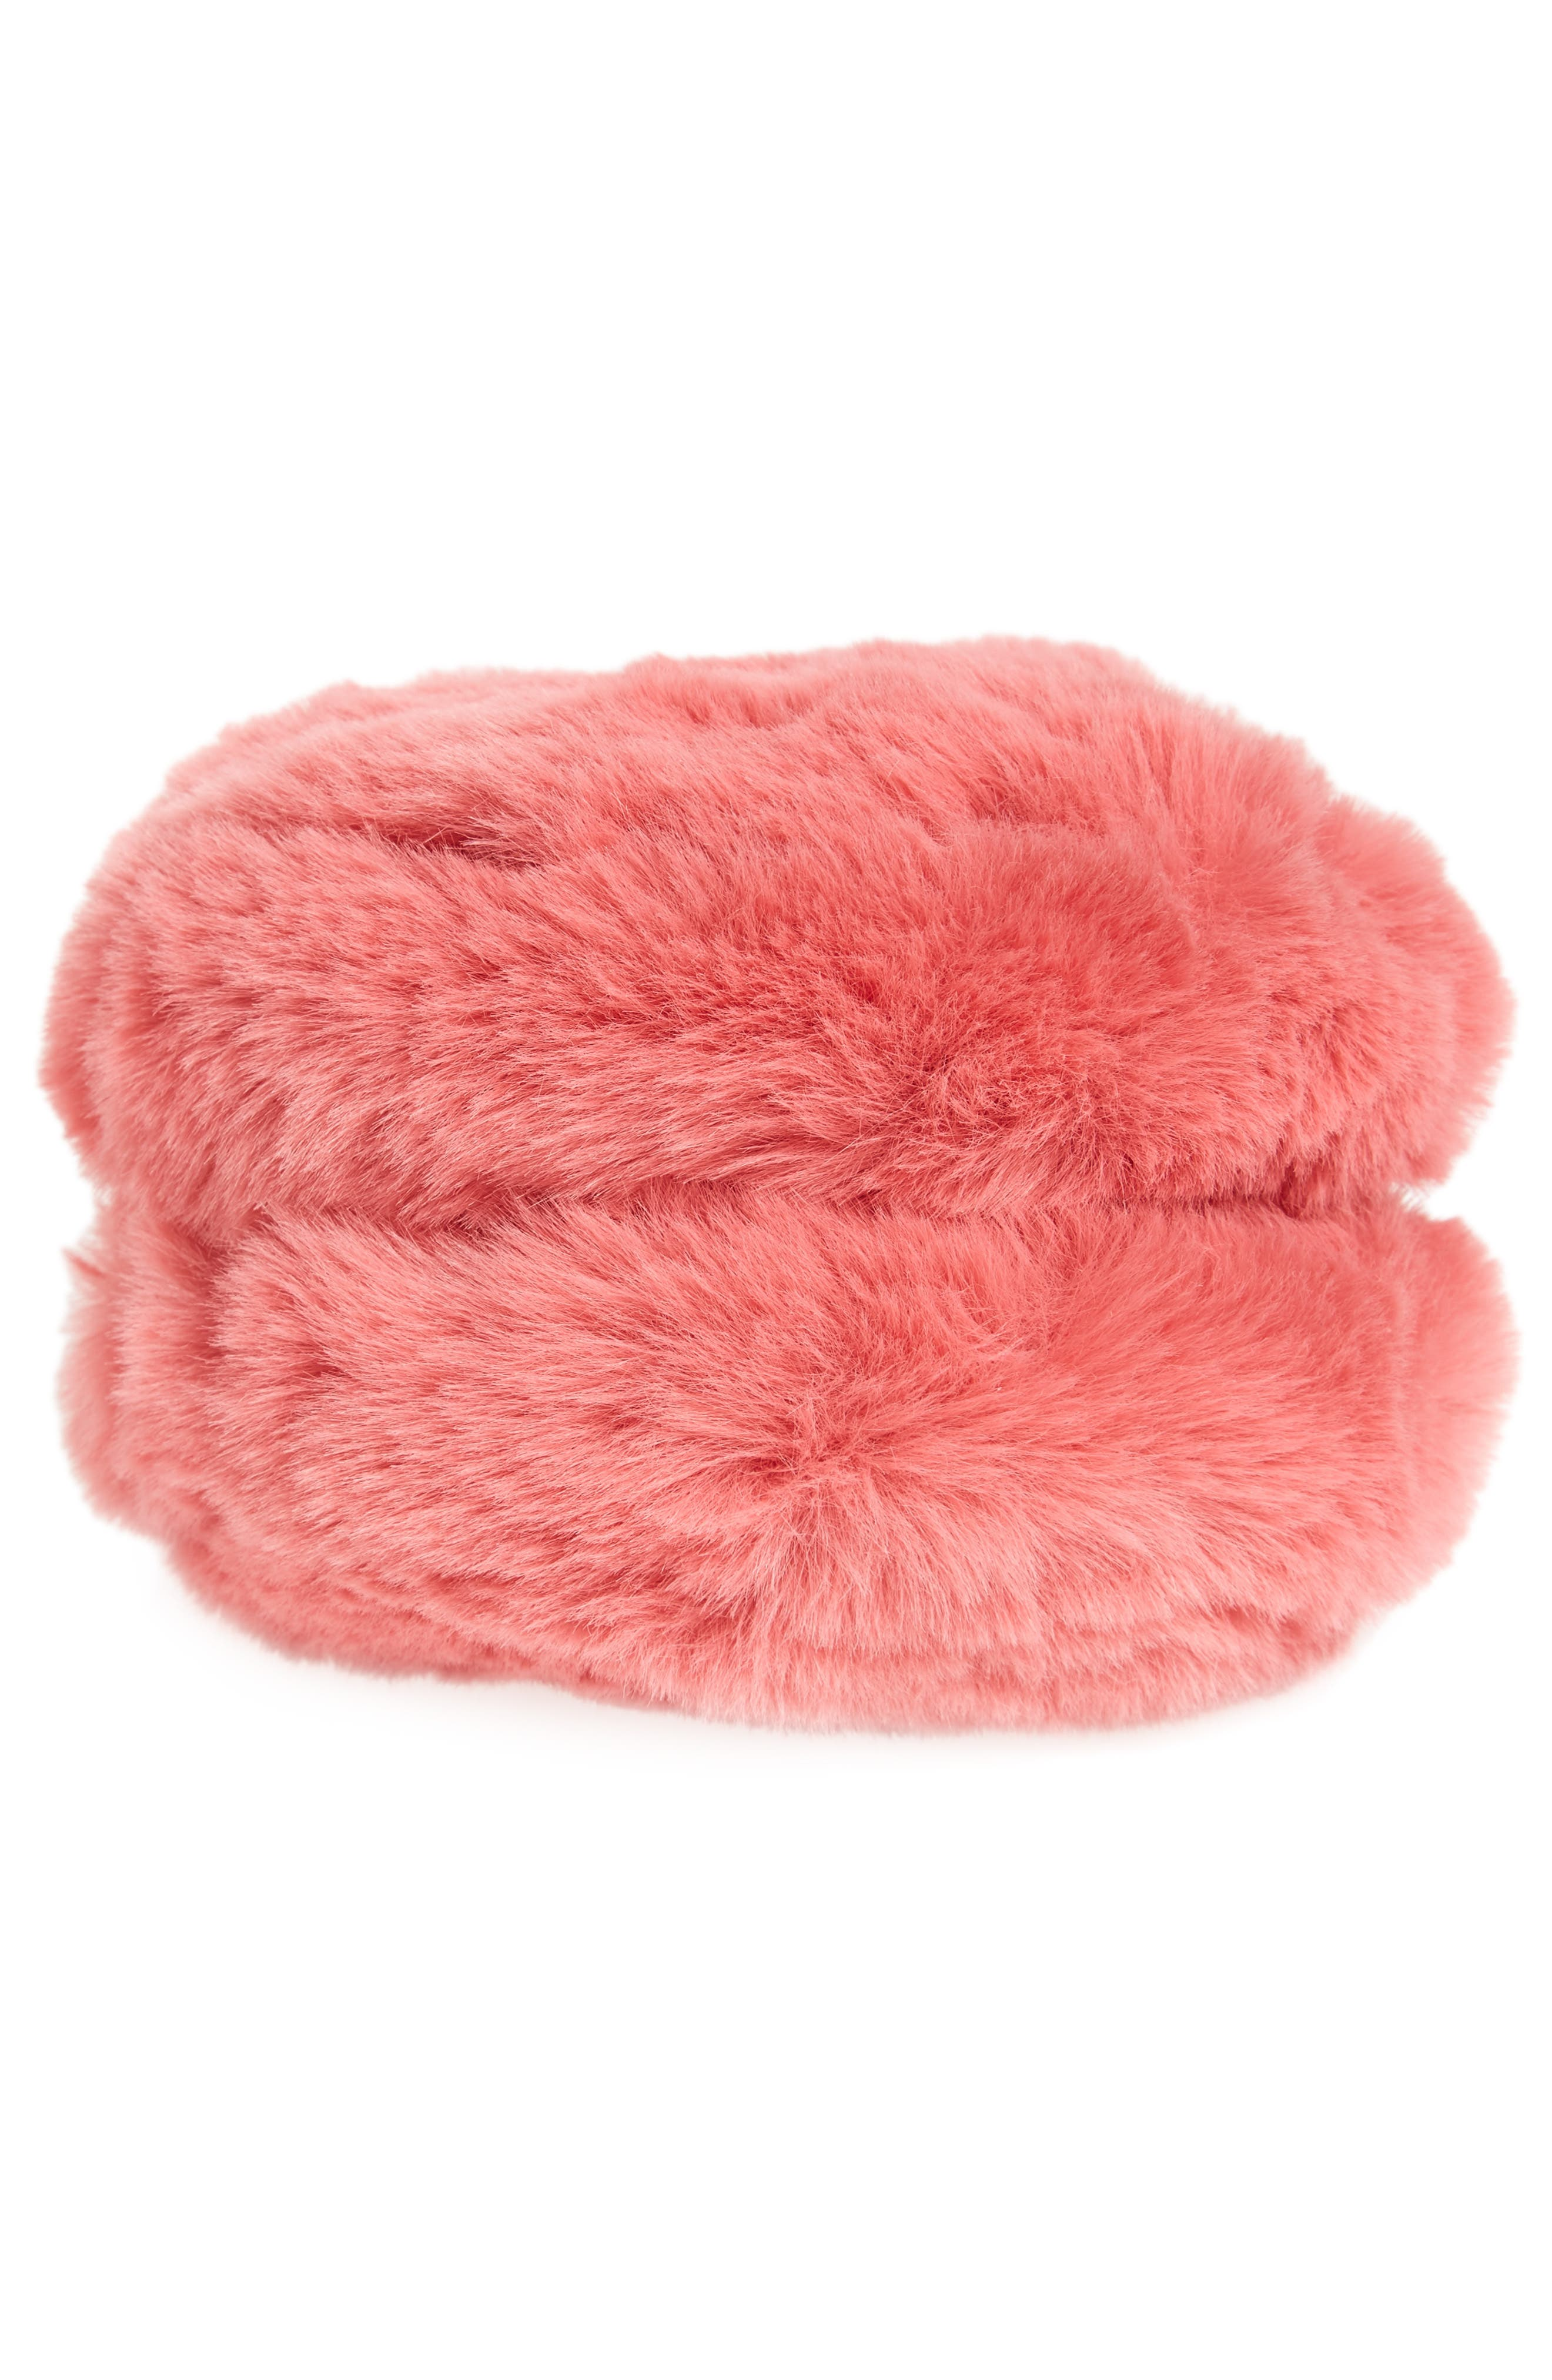 Macaron Faux Fur Wristlet,                             Alternate thumbnail 6, color,                             650